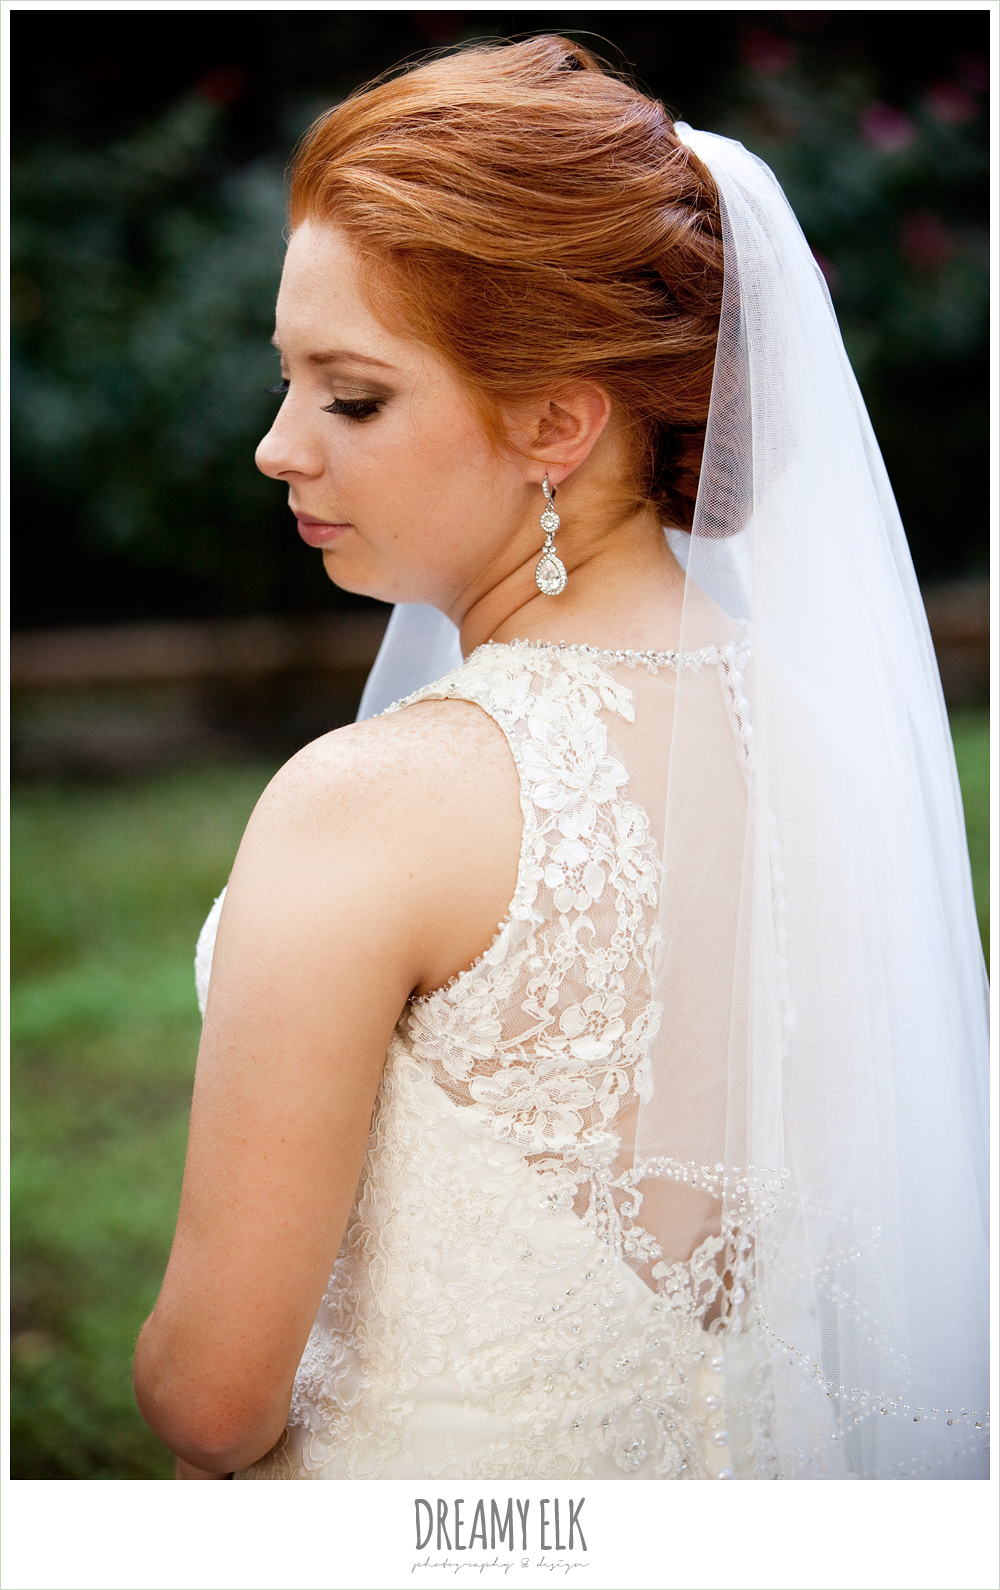 high-necked lace wedding dress with buttons, wedding hair updo, mid length veil, dreamy elk photography and design